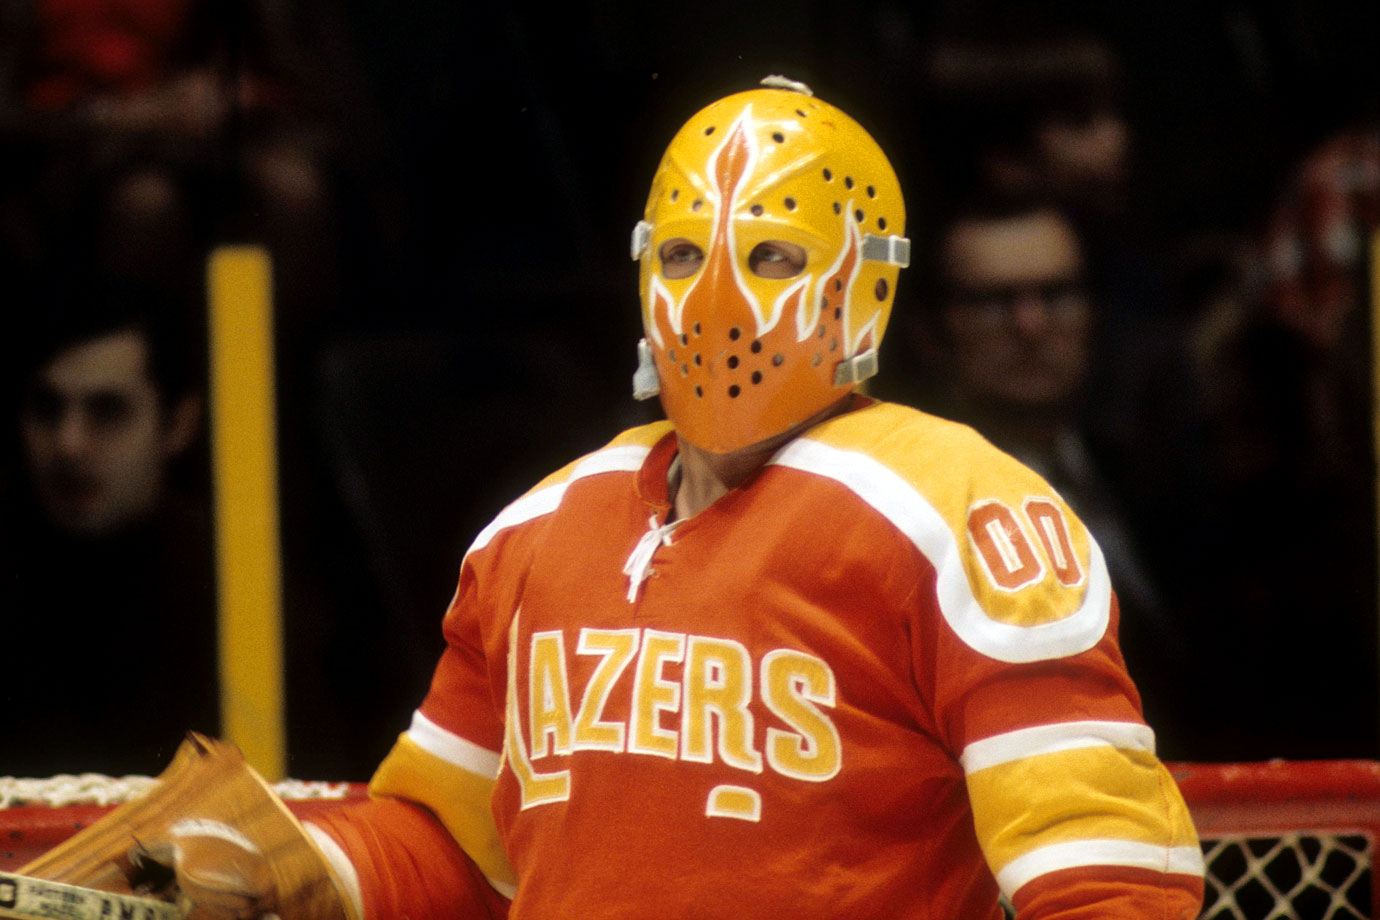 Bernie Parent was the first NHL player to jump to the new World Hockey Association in 1972, initially signing with the Miami Screaming Eagles, which did not materialize as planned and became the Philadelphia Blazers. Parent left the team over a contract dispute during the 1973 WHA playoffs.